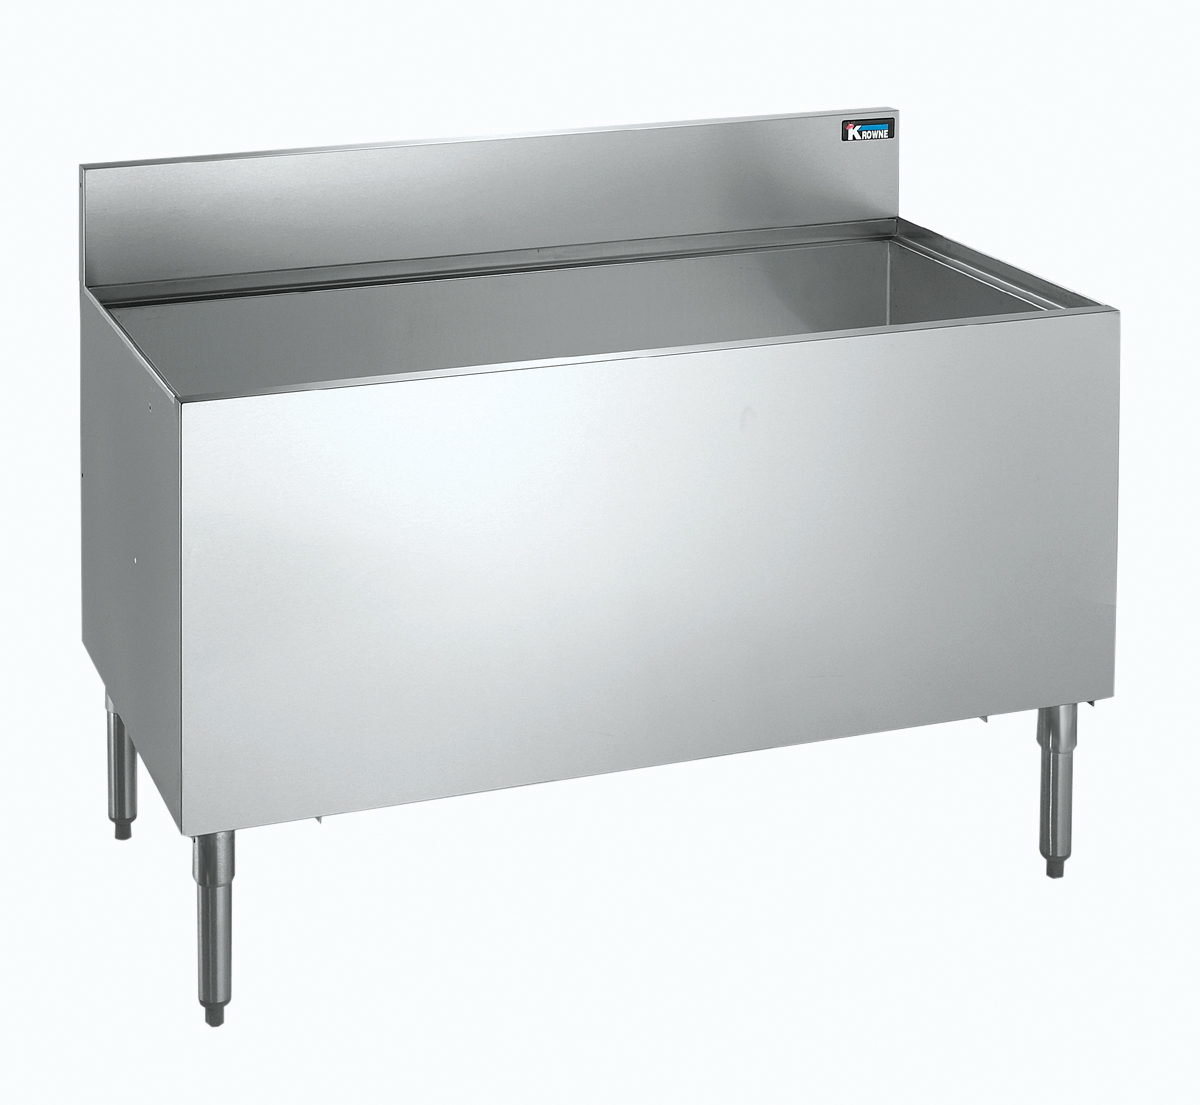 Krowne Metal KR18-CB60 underbar beer bin, ice cooled